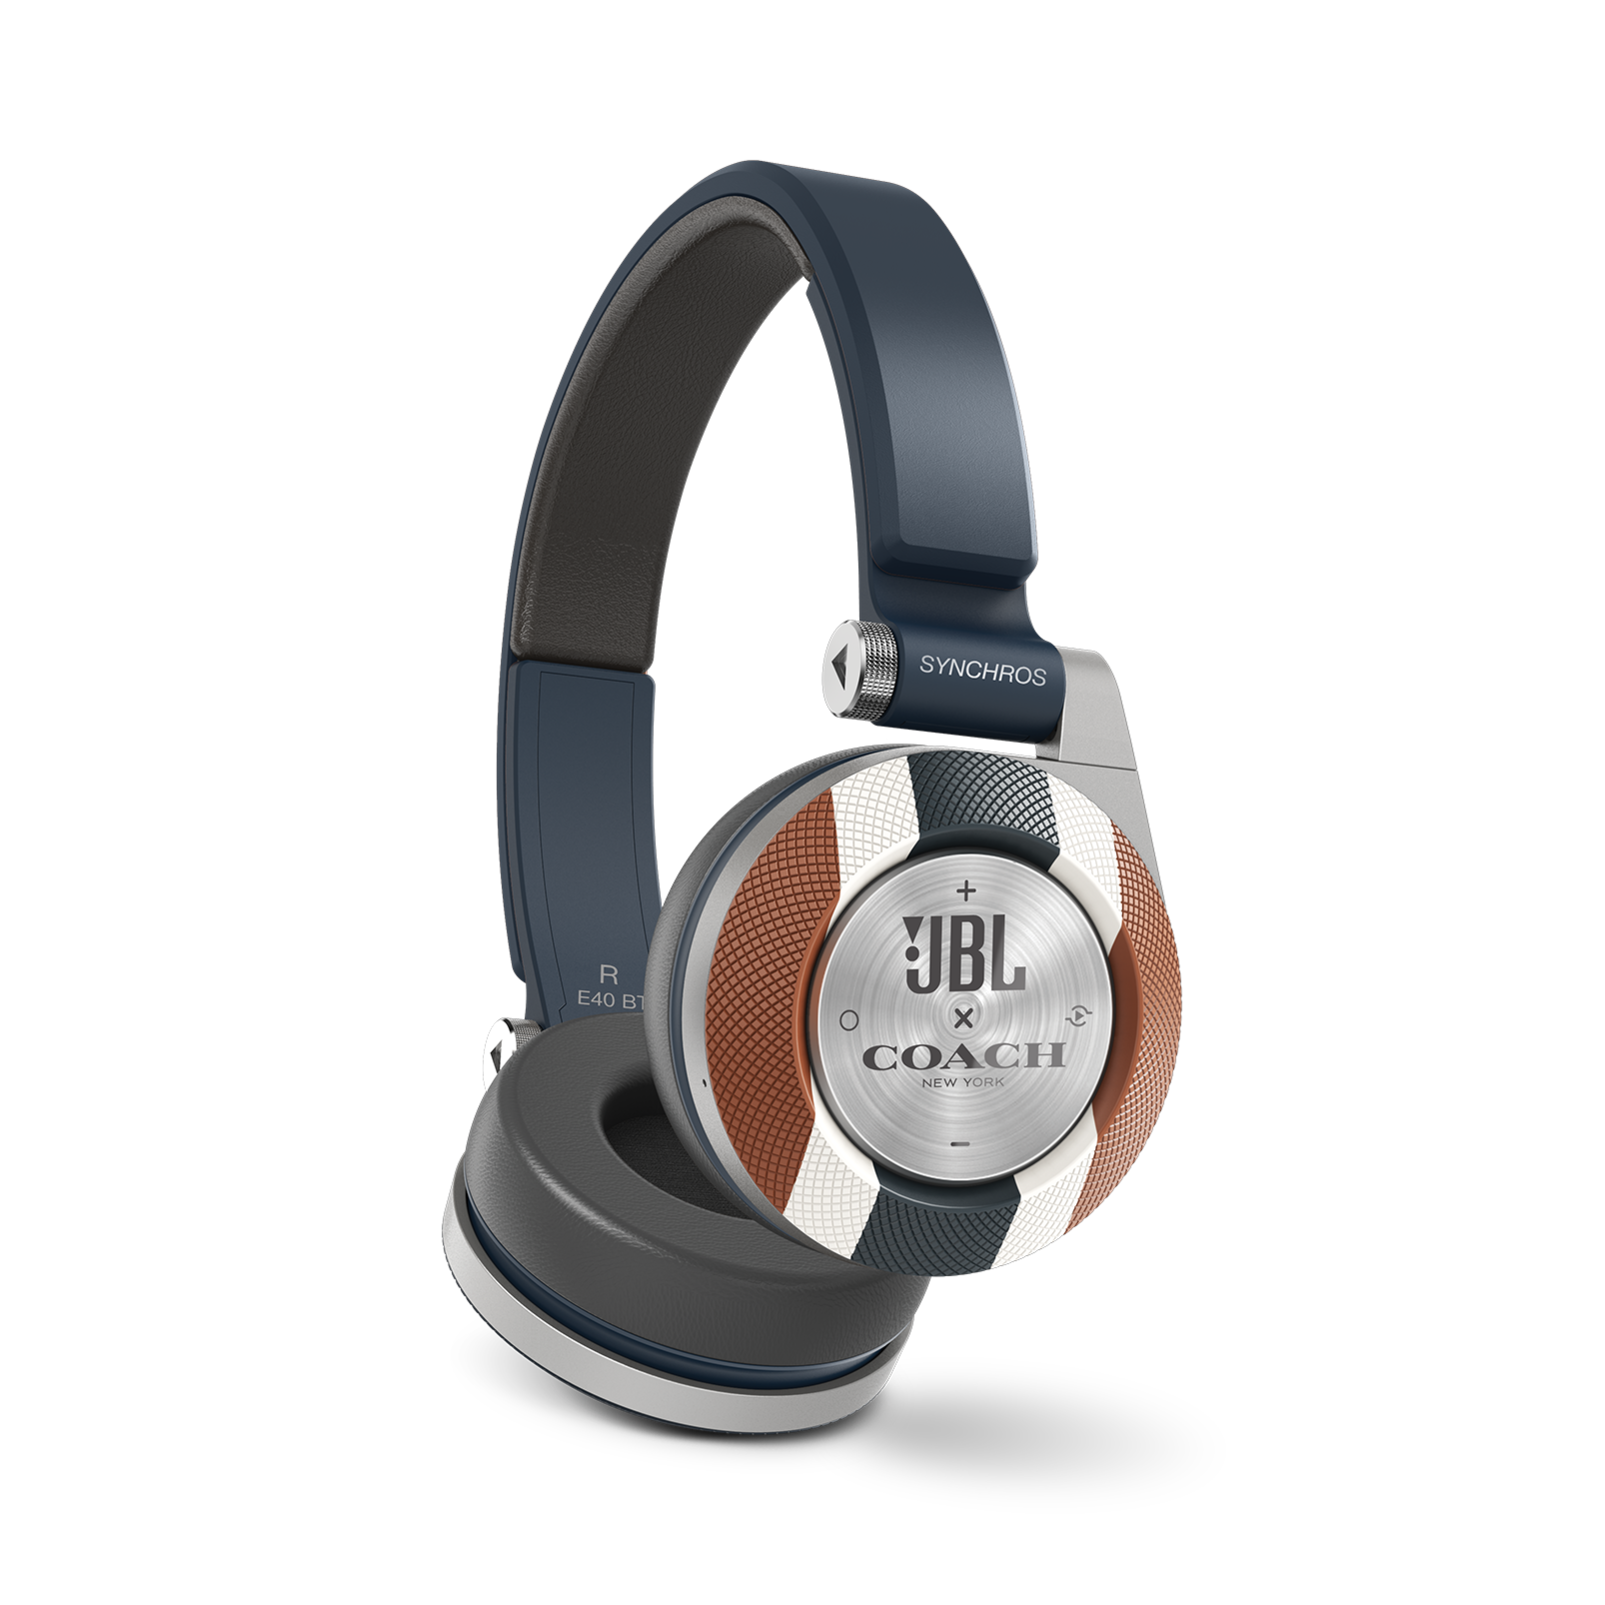 E40BT COACH Limited Edition - Varsity Stripe - On-ear, mobile phone-friendly headphones featuring JBL signature sound, wireless Bluetooth connectivity with ShareMe music sharing, and an ultra-comfortable fit. - Detailshot 1